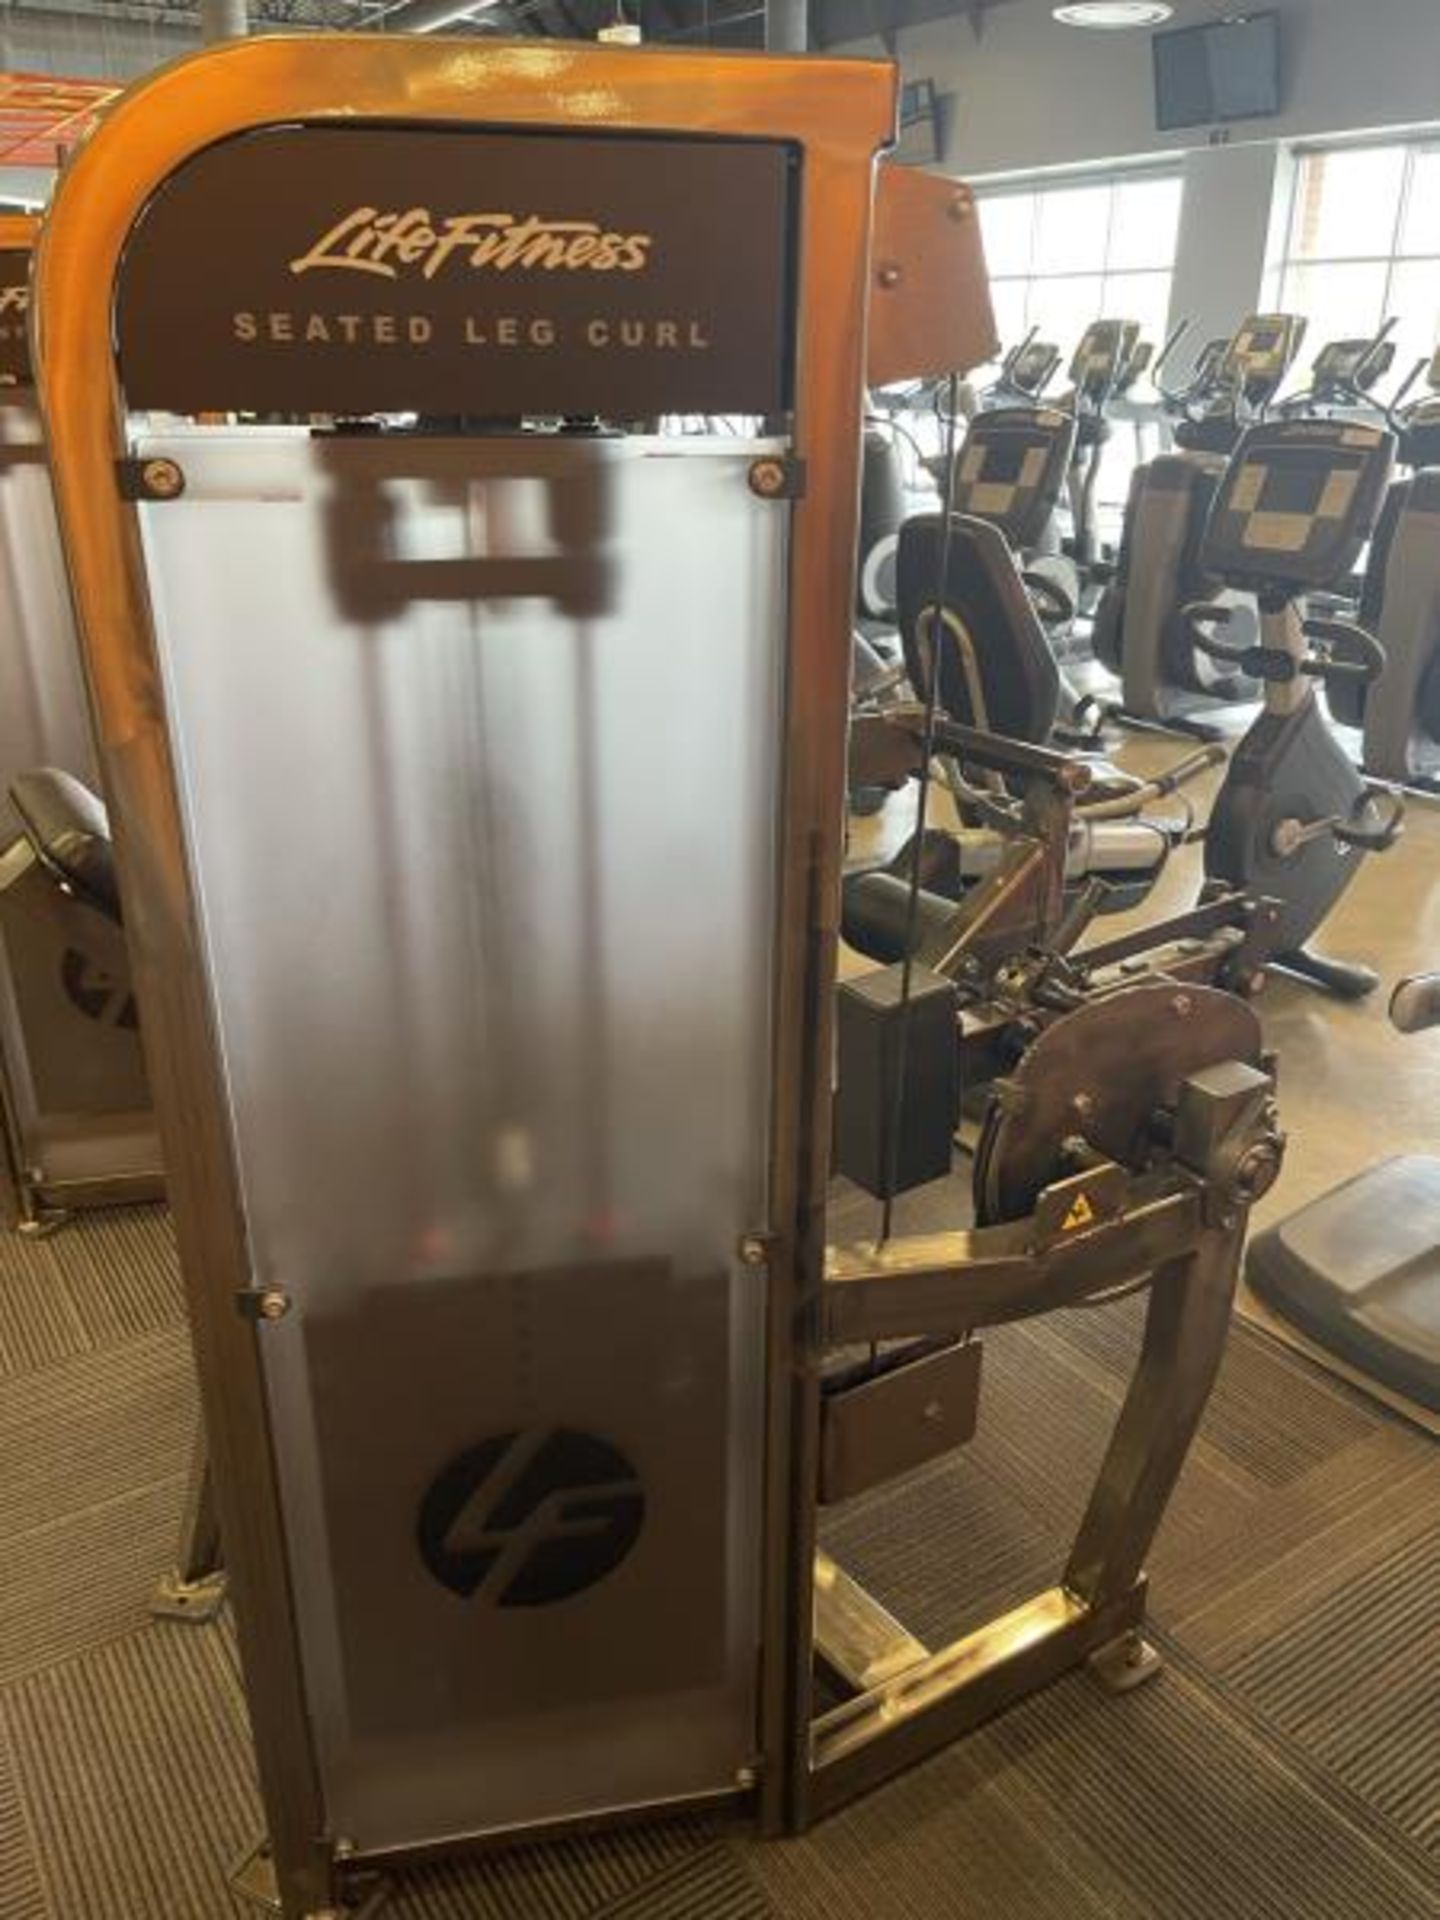 Life Fitness Seated Leg Curl M: PSSLCSE - Image 4 of 6